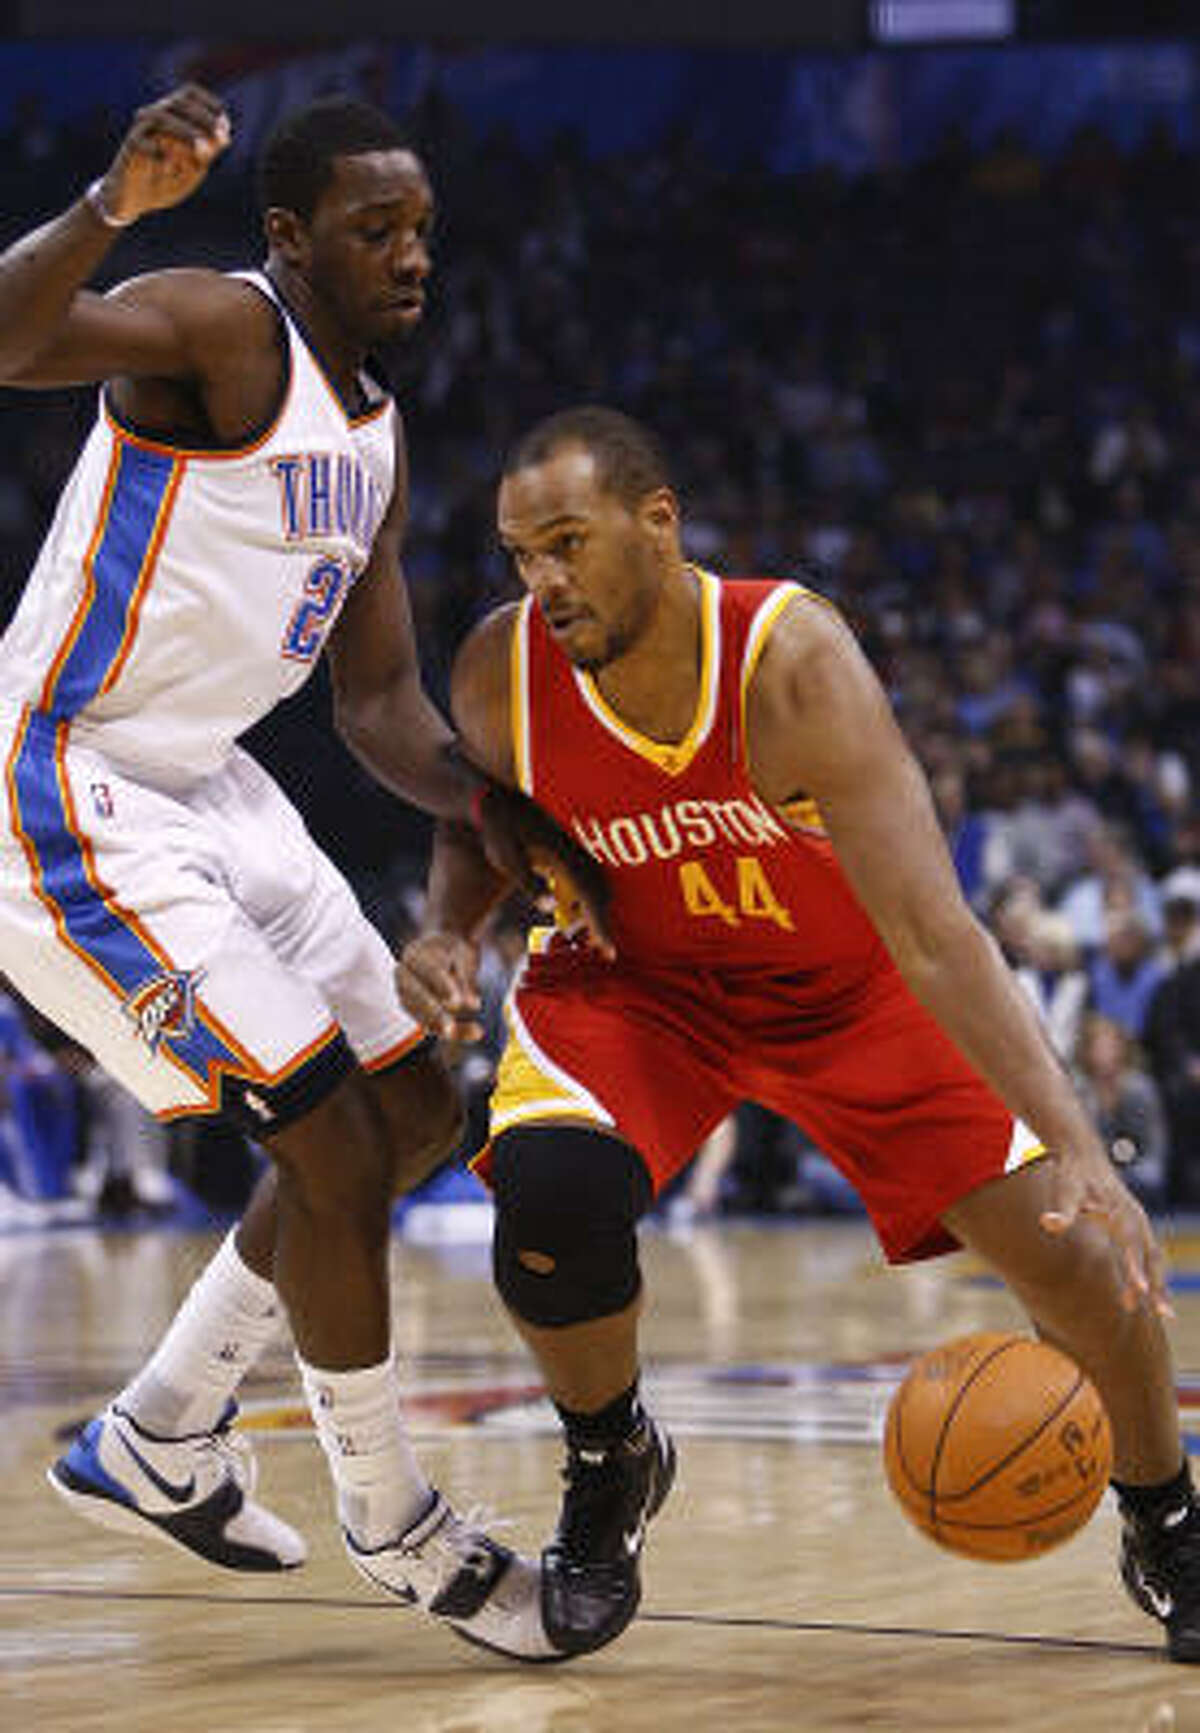 Rockets center Chuck Hayes drives to the basket against Thunder forward Jeff Green.